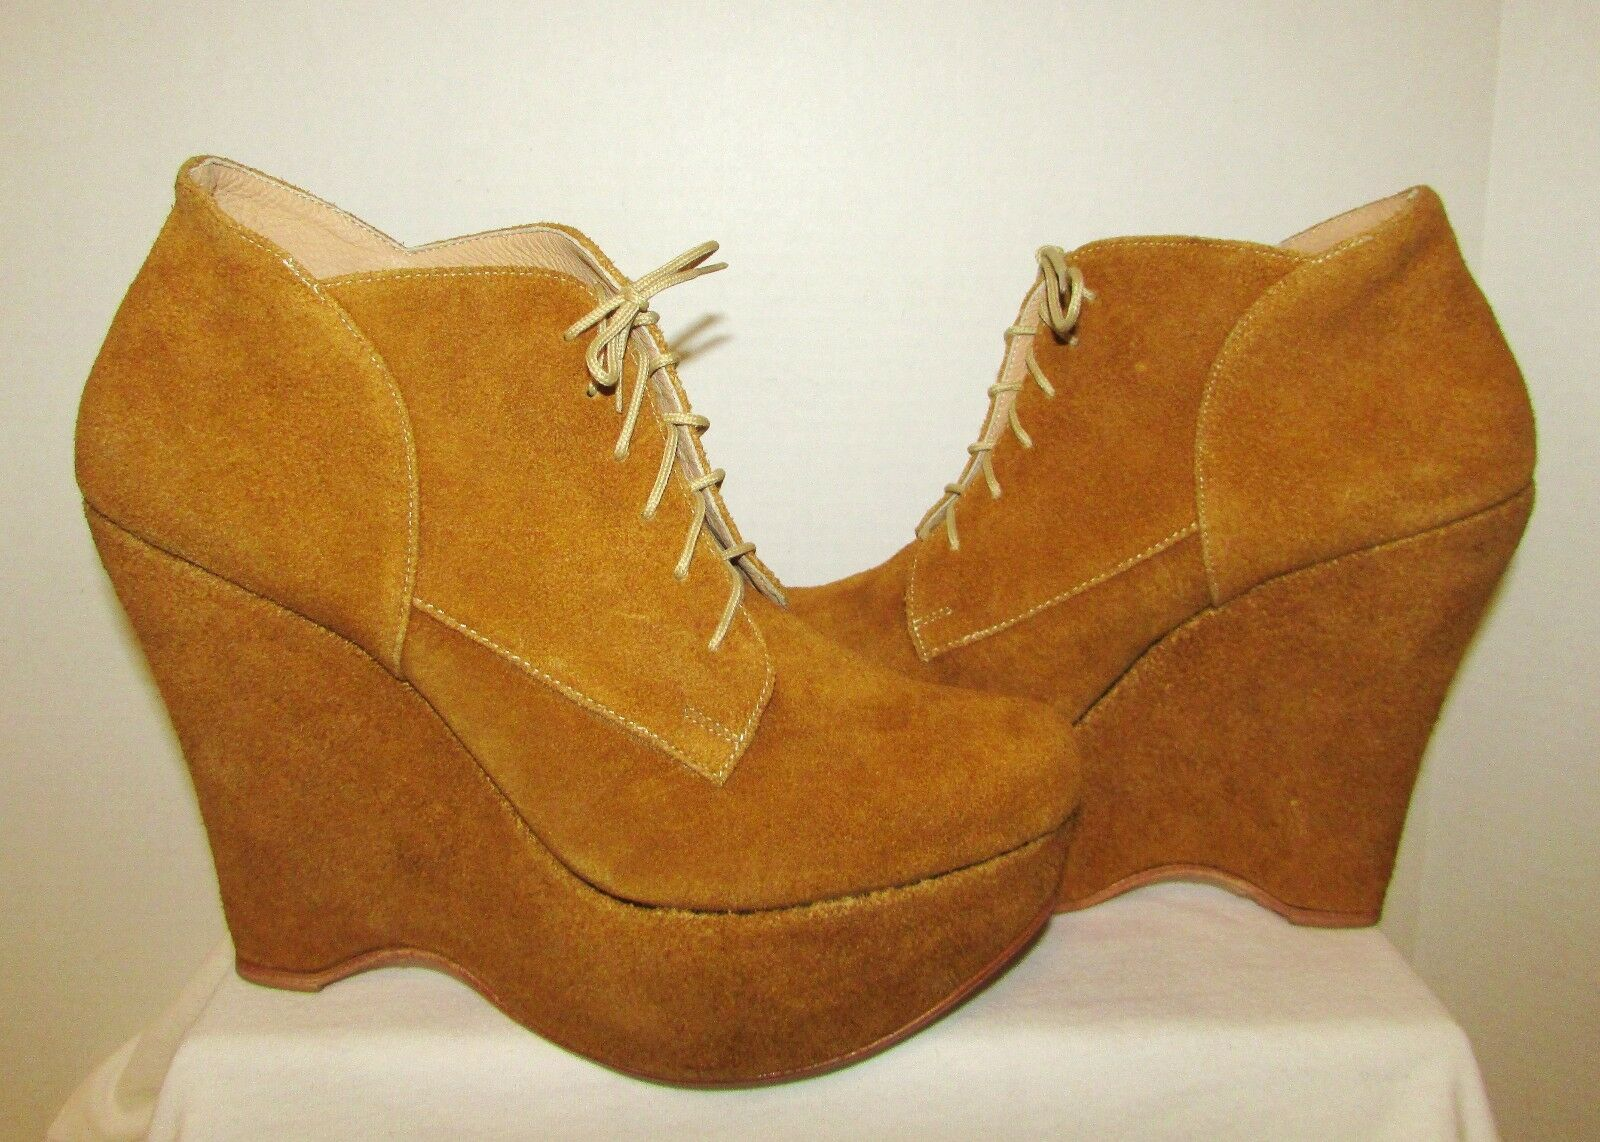 RARE PLOMO TAN SUEDE LACE-UP 5.5  WEDGE BOOTIE ANKLE BOOTS SIZE U.S.9.5 41 EUC.